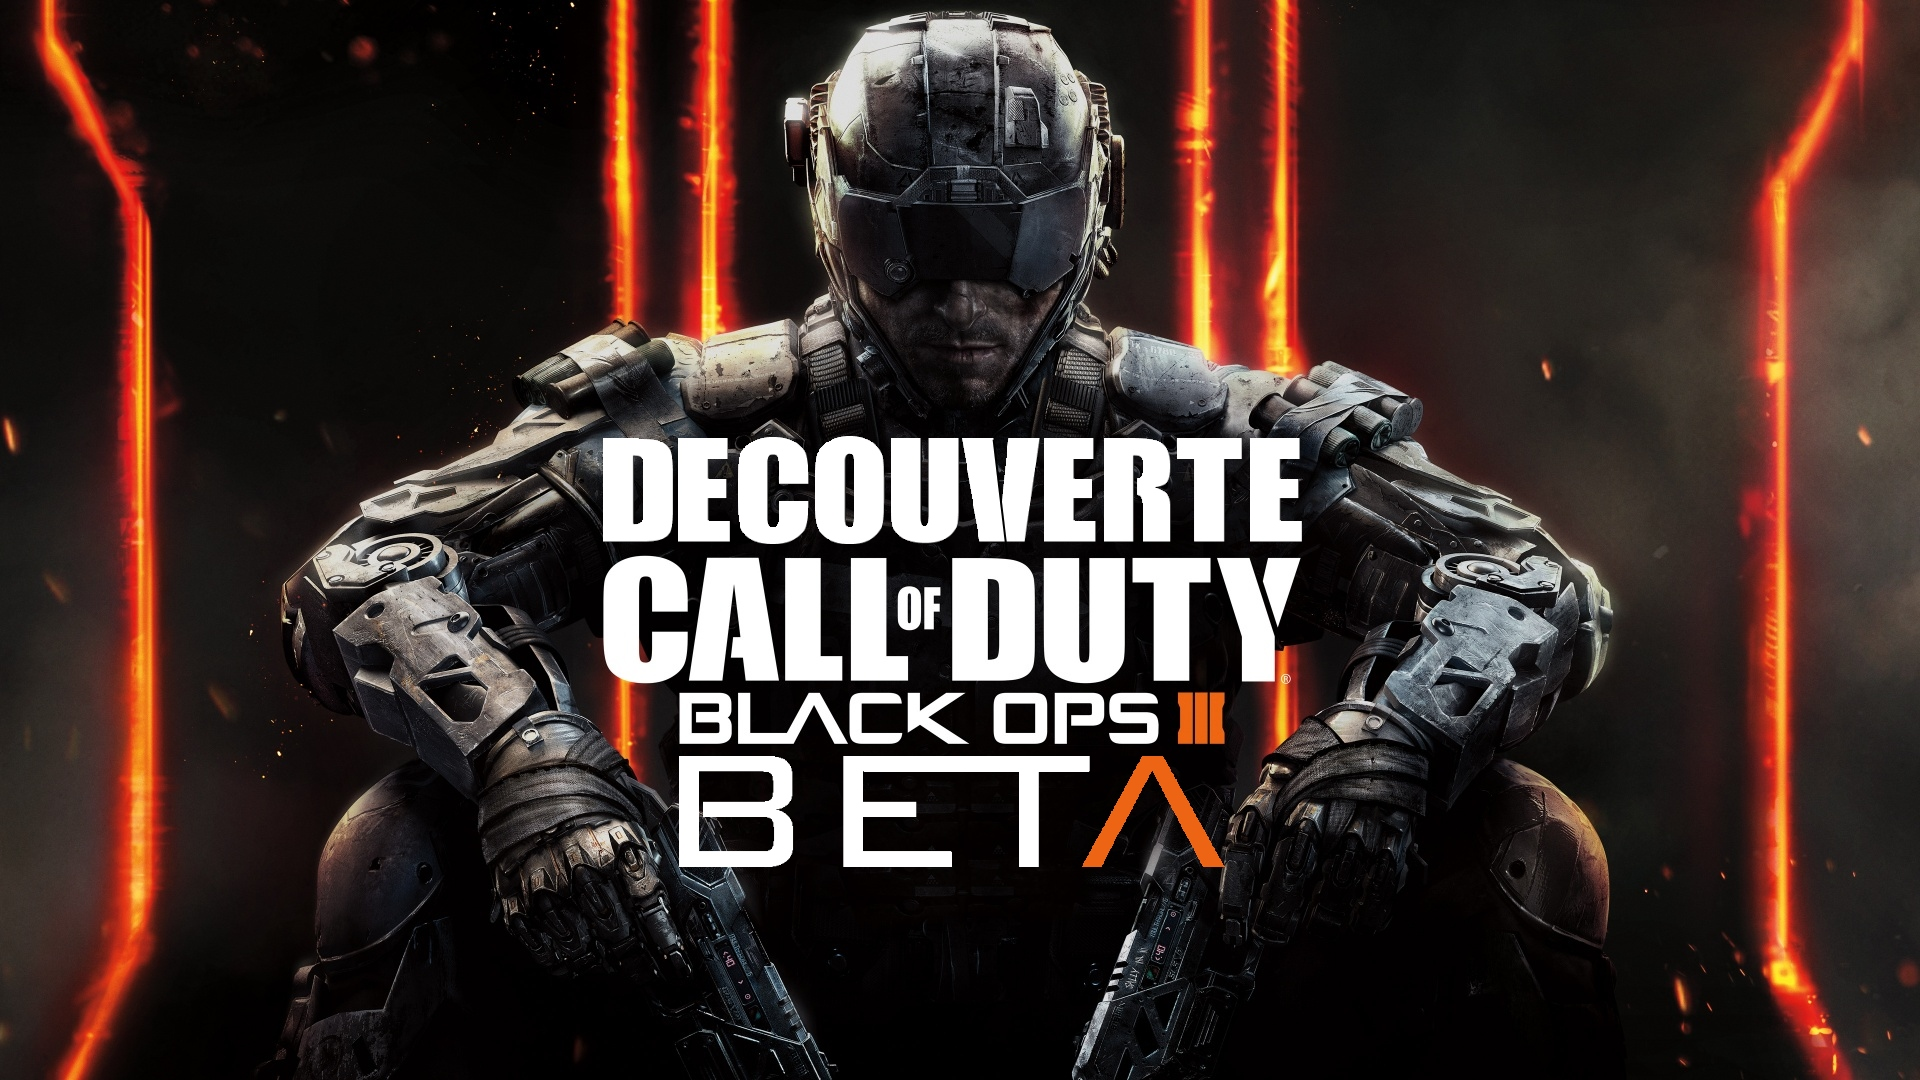 d couverte call of duty black ops 3 b ta ps4 intensivegame. Black Bedroom Furniture Sets. Home Design Ideas